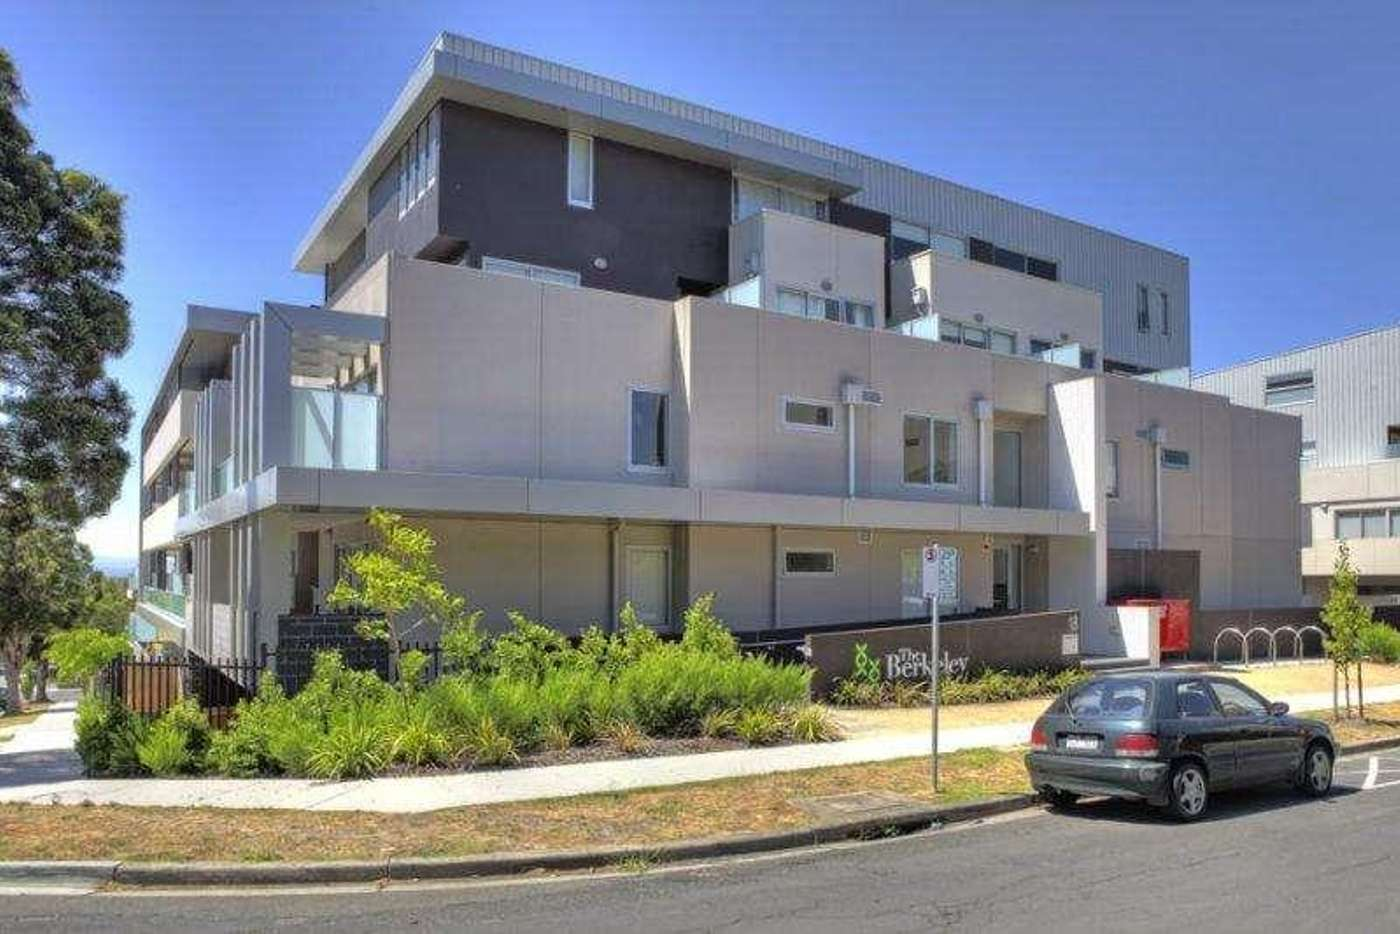 Main view of Homely apartment listing, 104/18 Berkeley Street, Doncaster VIC 3108